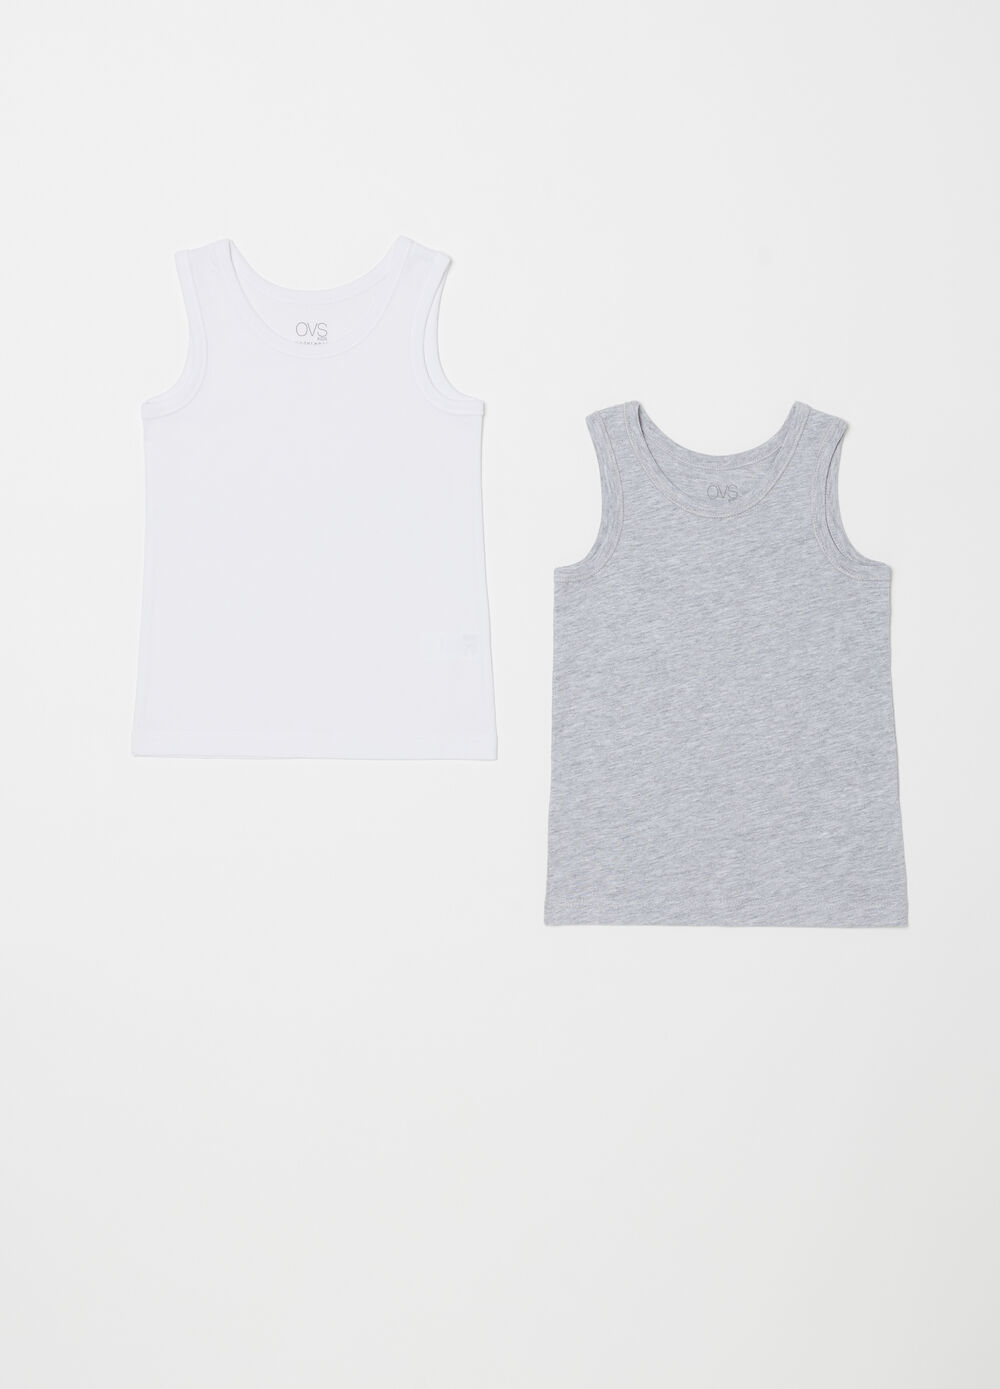 Set of two vests in 100% cotton